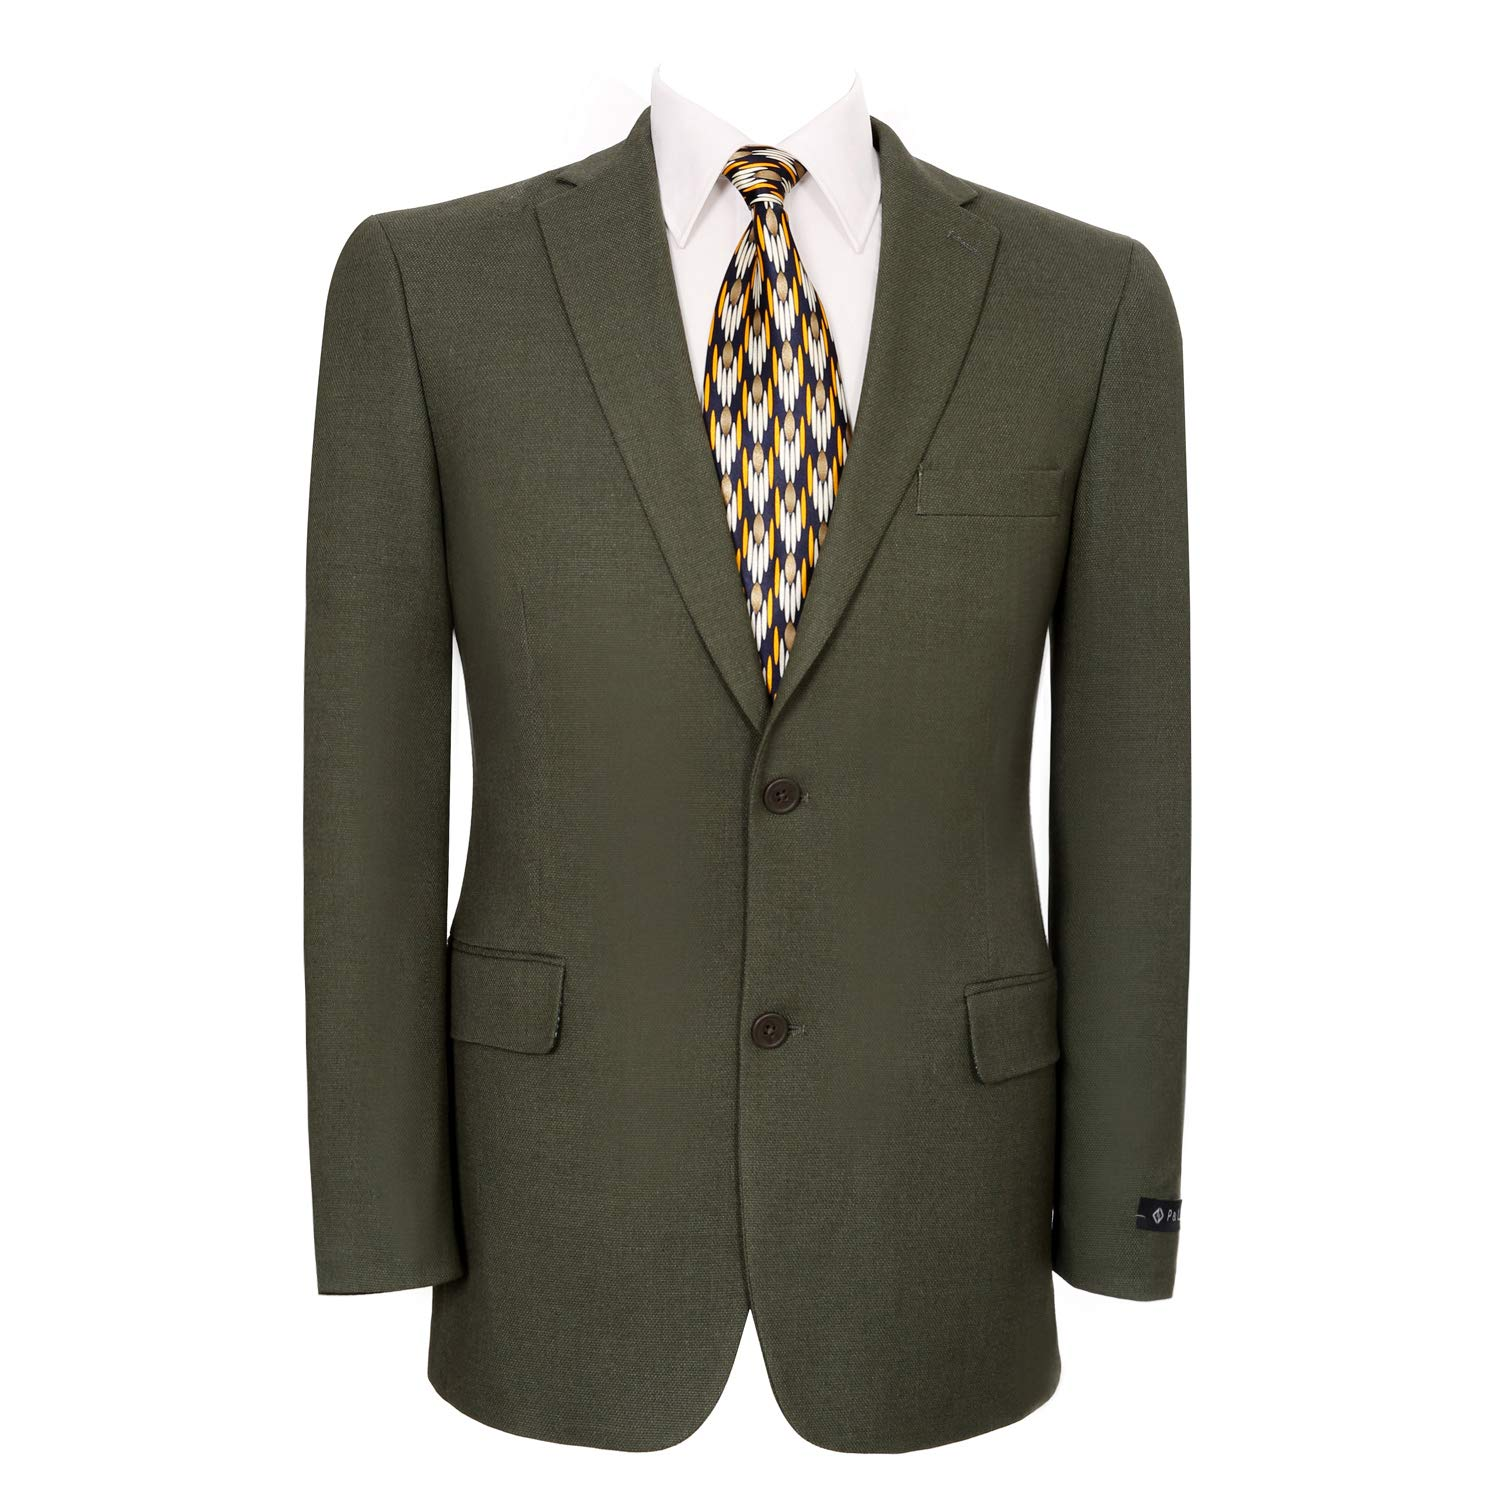 Pio Lorenzo Men's Classic Fit 2 Button Blazer Suit Separate Jacket Olive by Pio Lorenzo